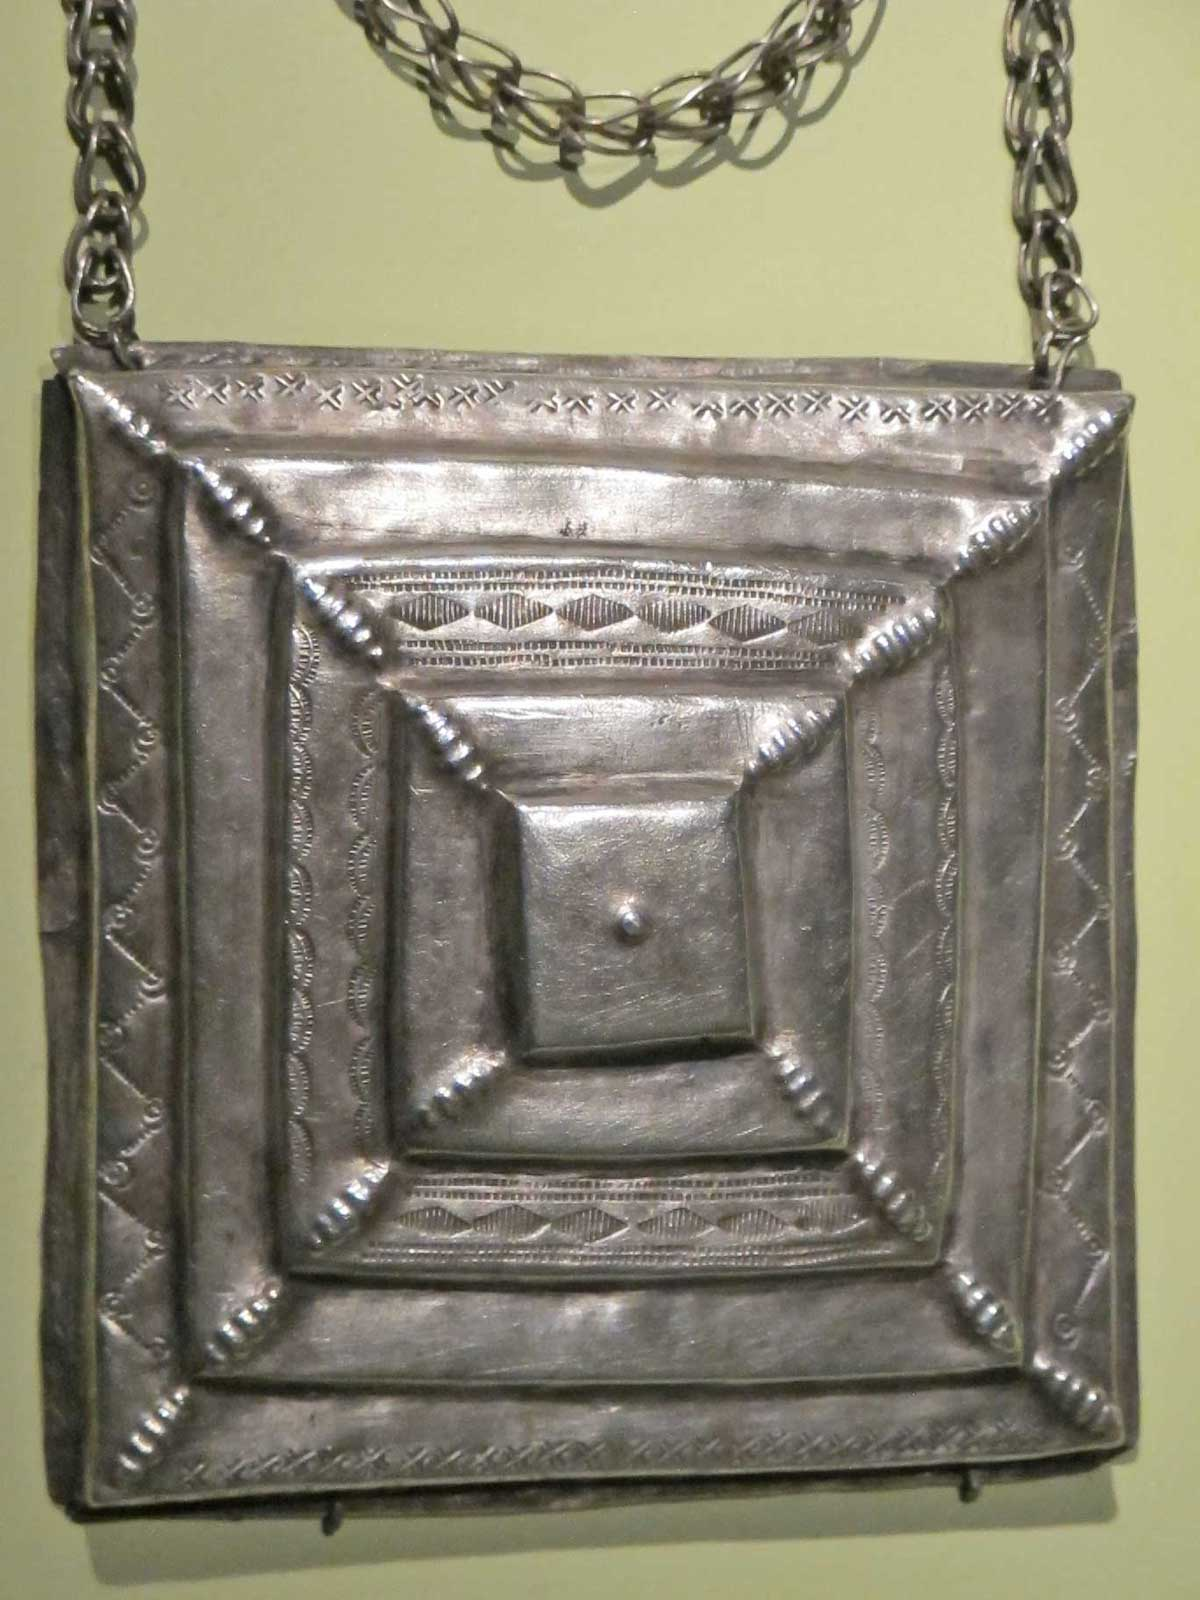 Square pendant by Mende artist from Sierra Leone, of silver, early 20th century.